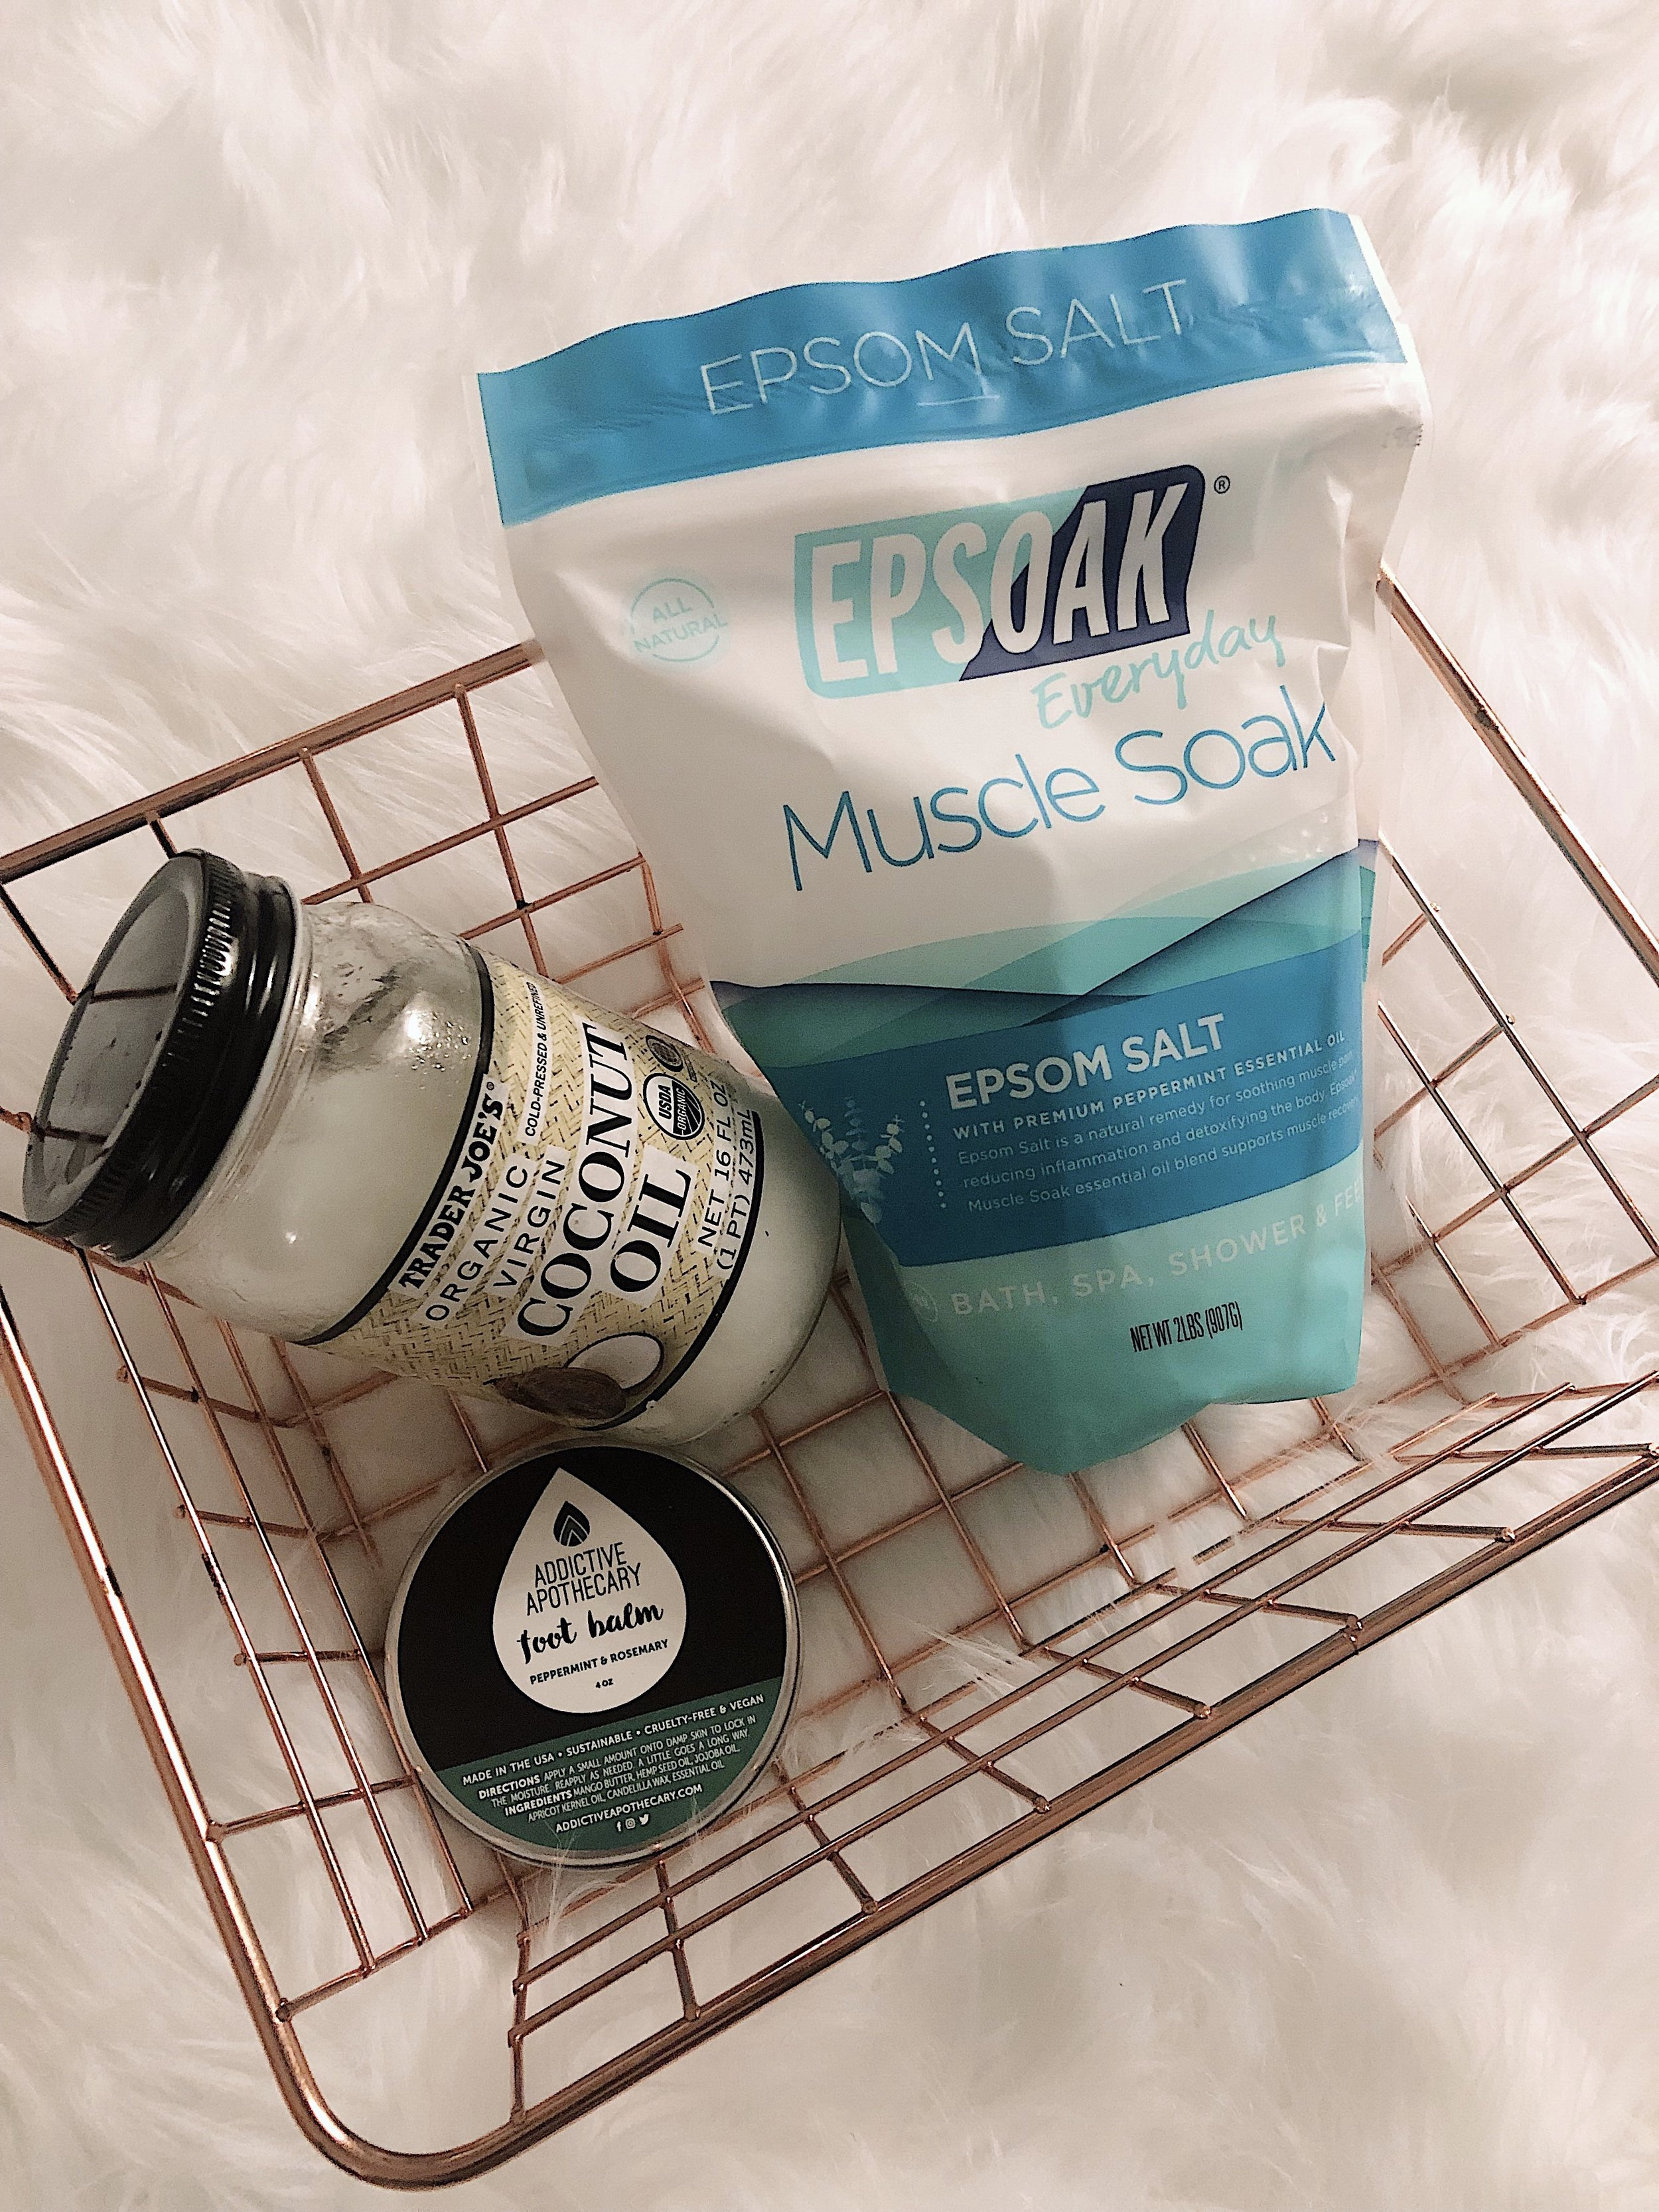 For a little extra pampering, I like to apply coconut oil to my body after I get out of the shower and a foot balm to nurture my feet.